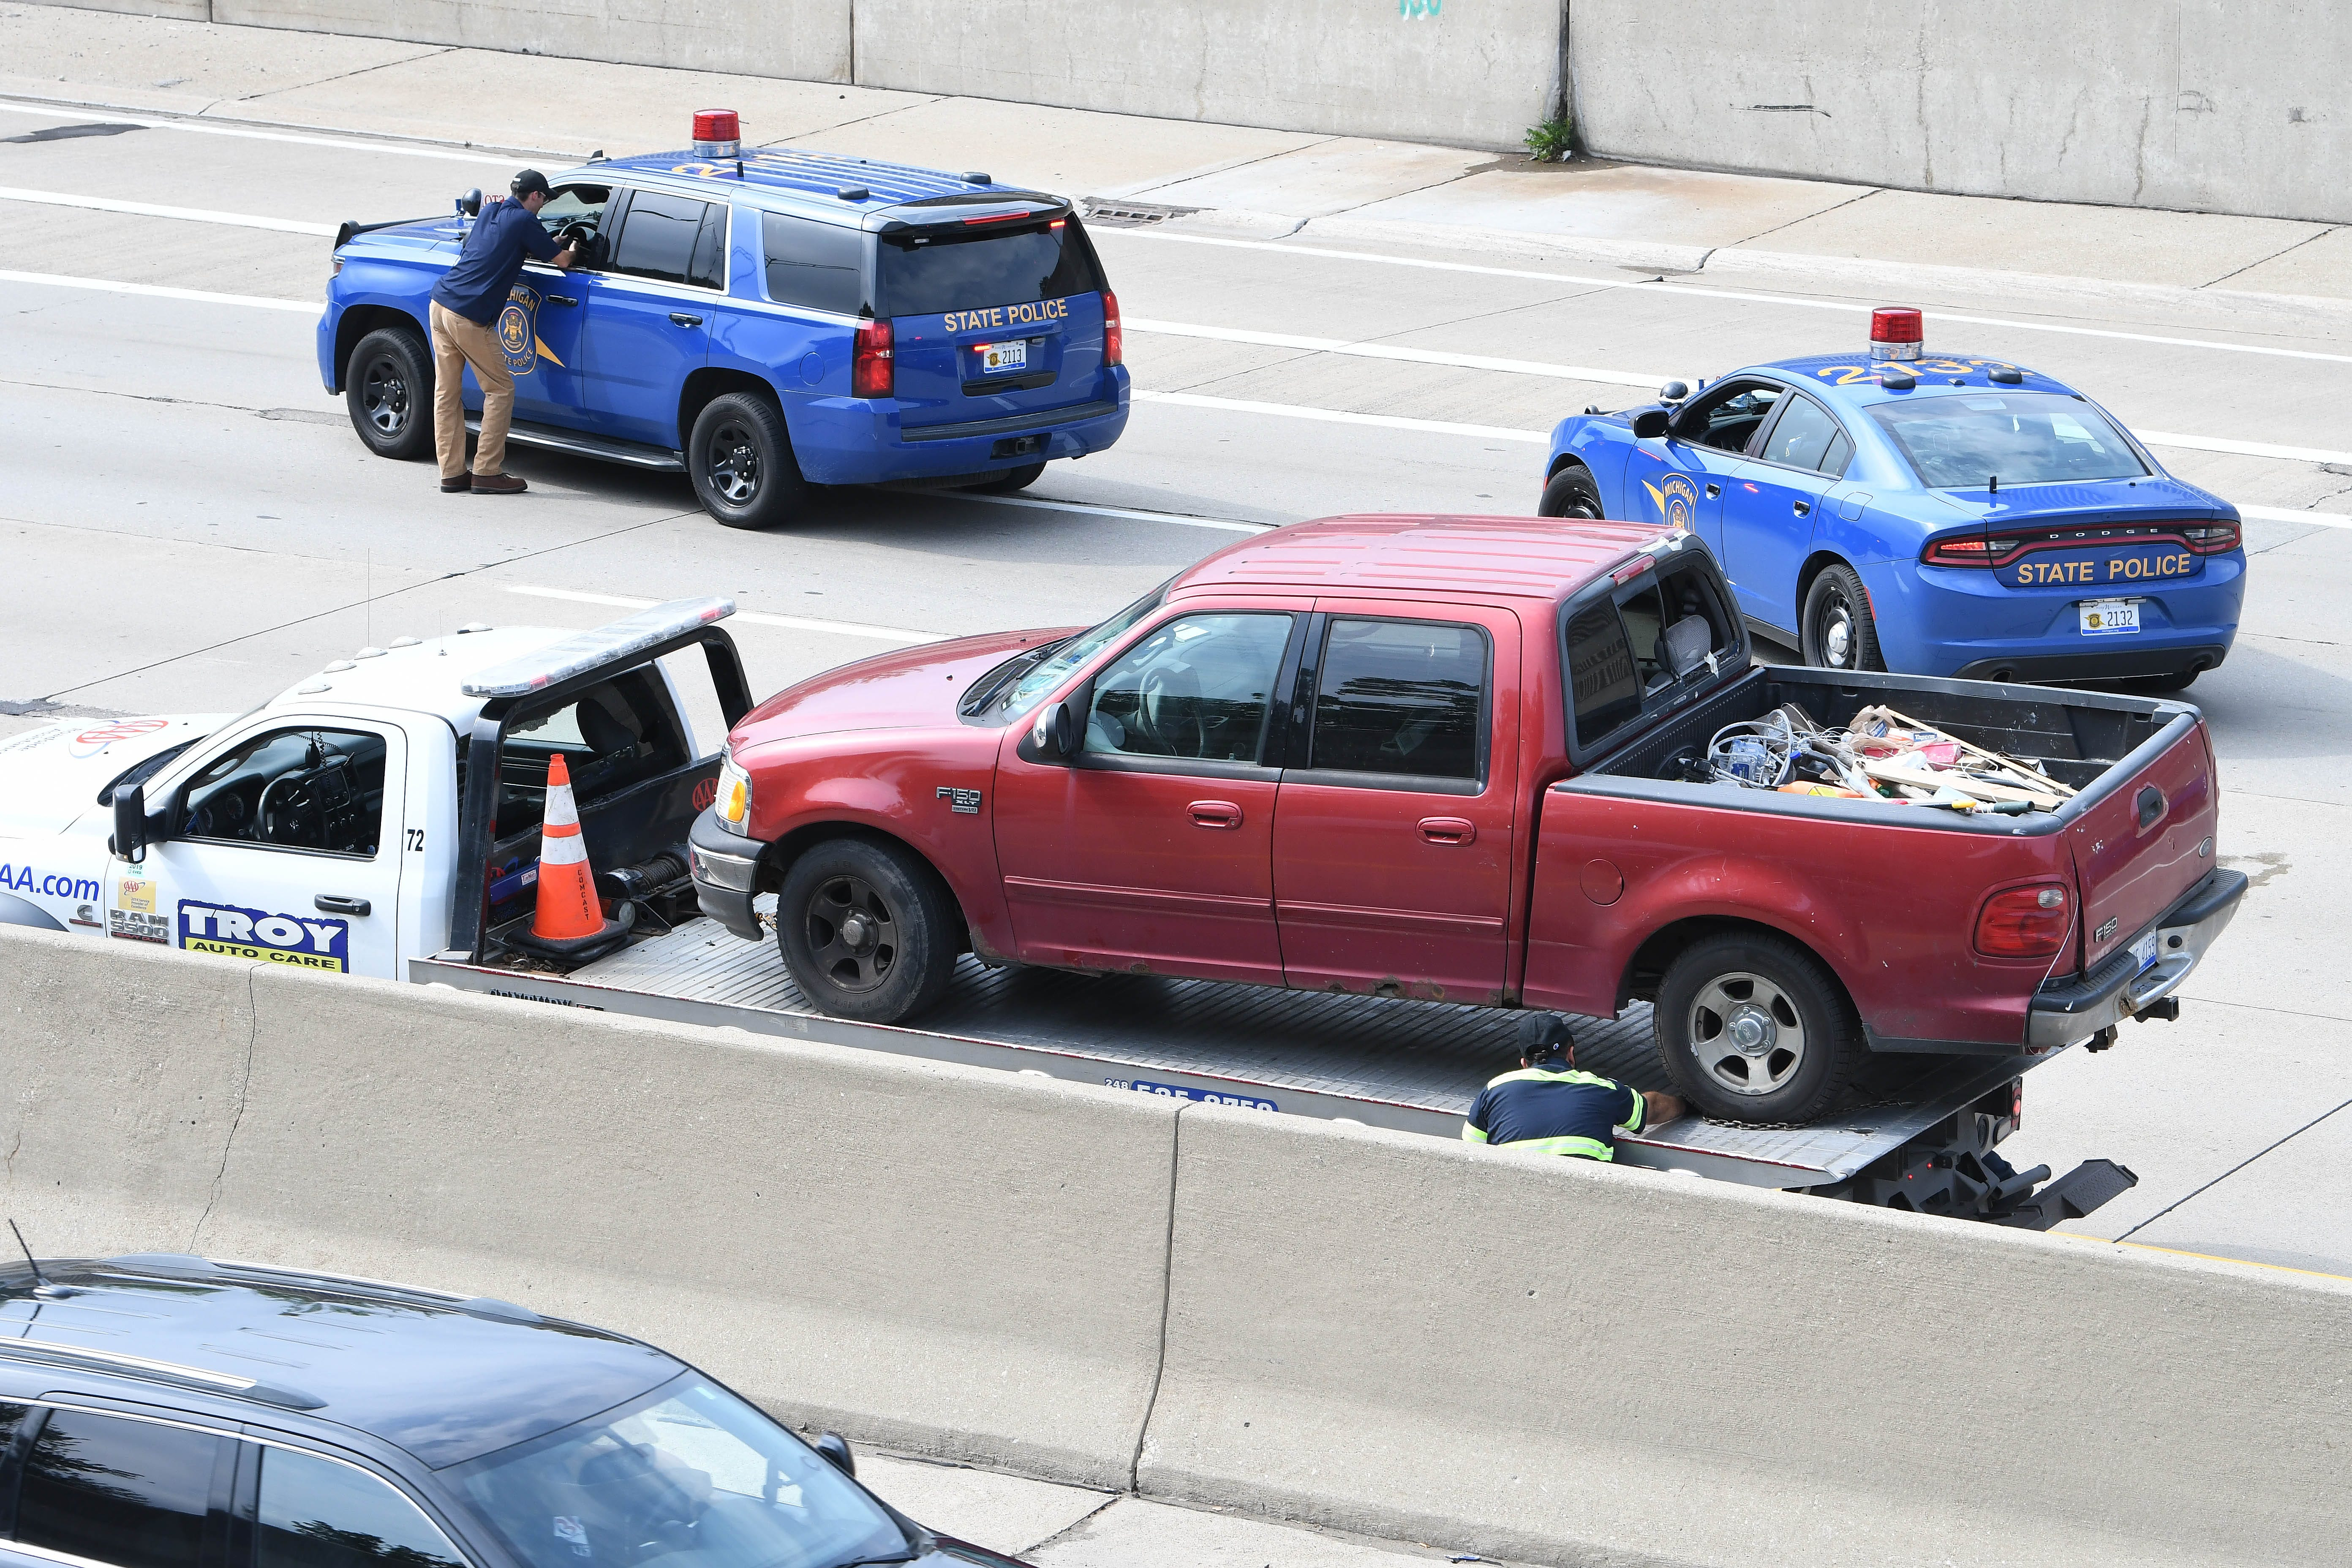 WB I-696 reopens after state police 'road rage' investigation